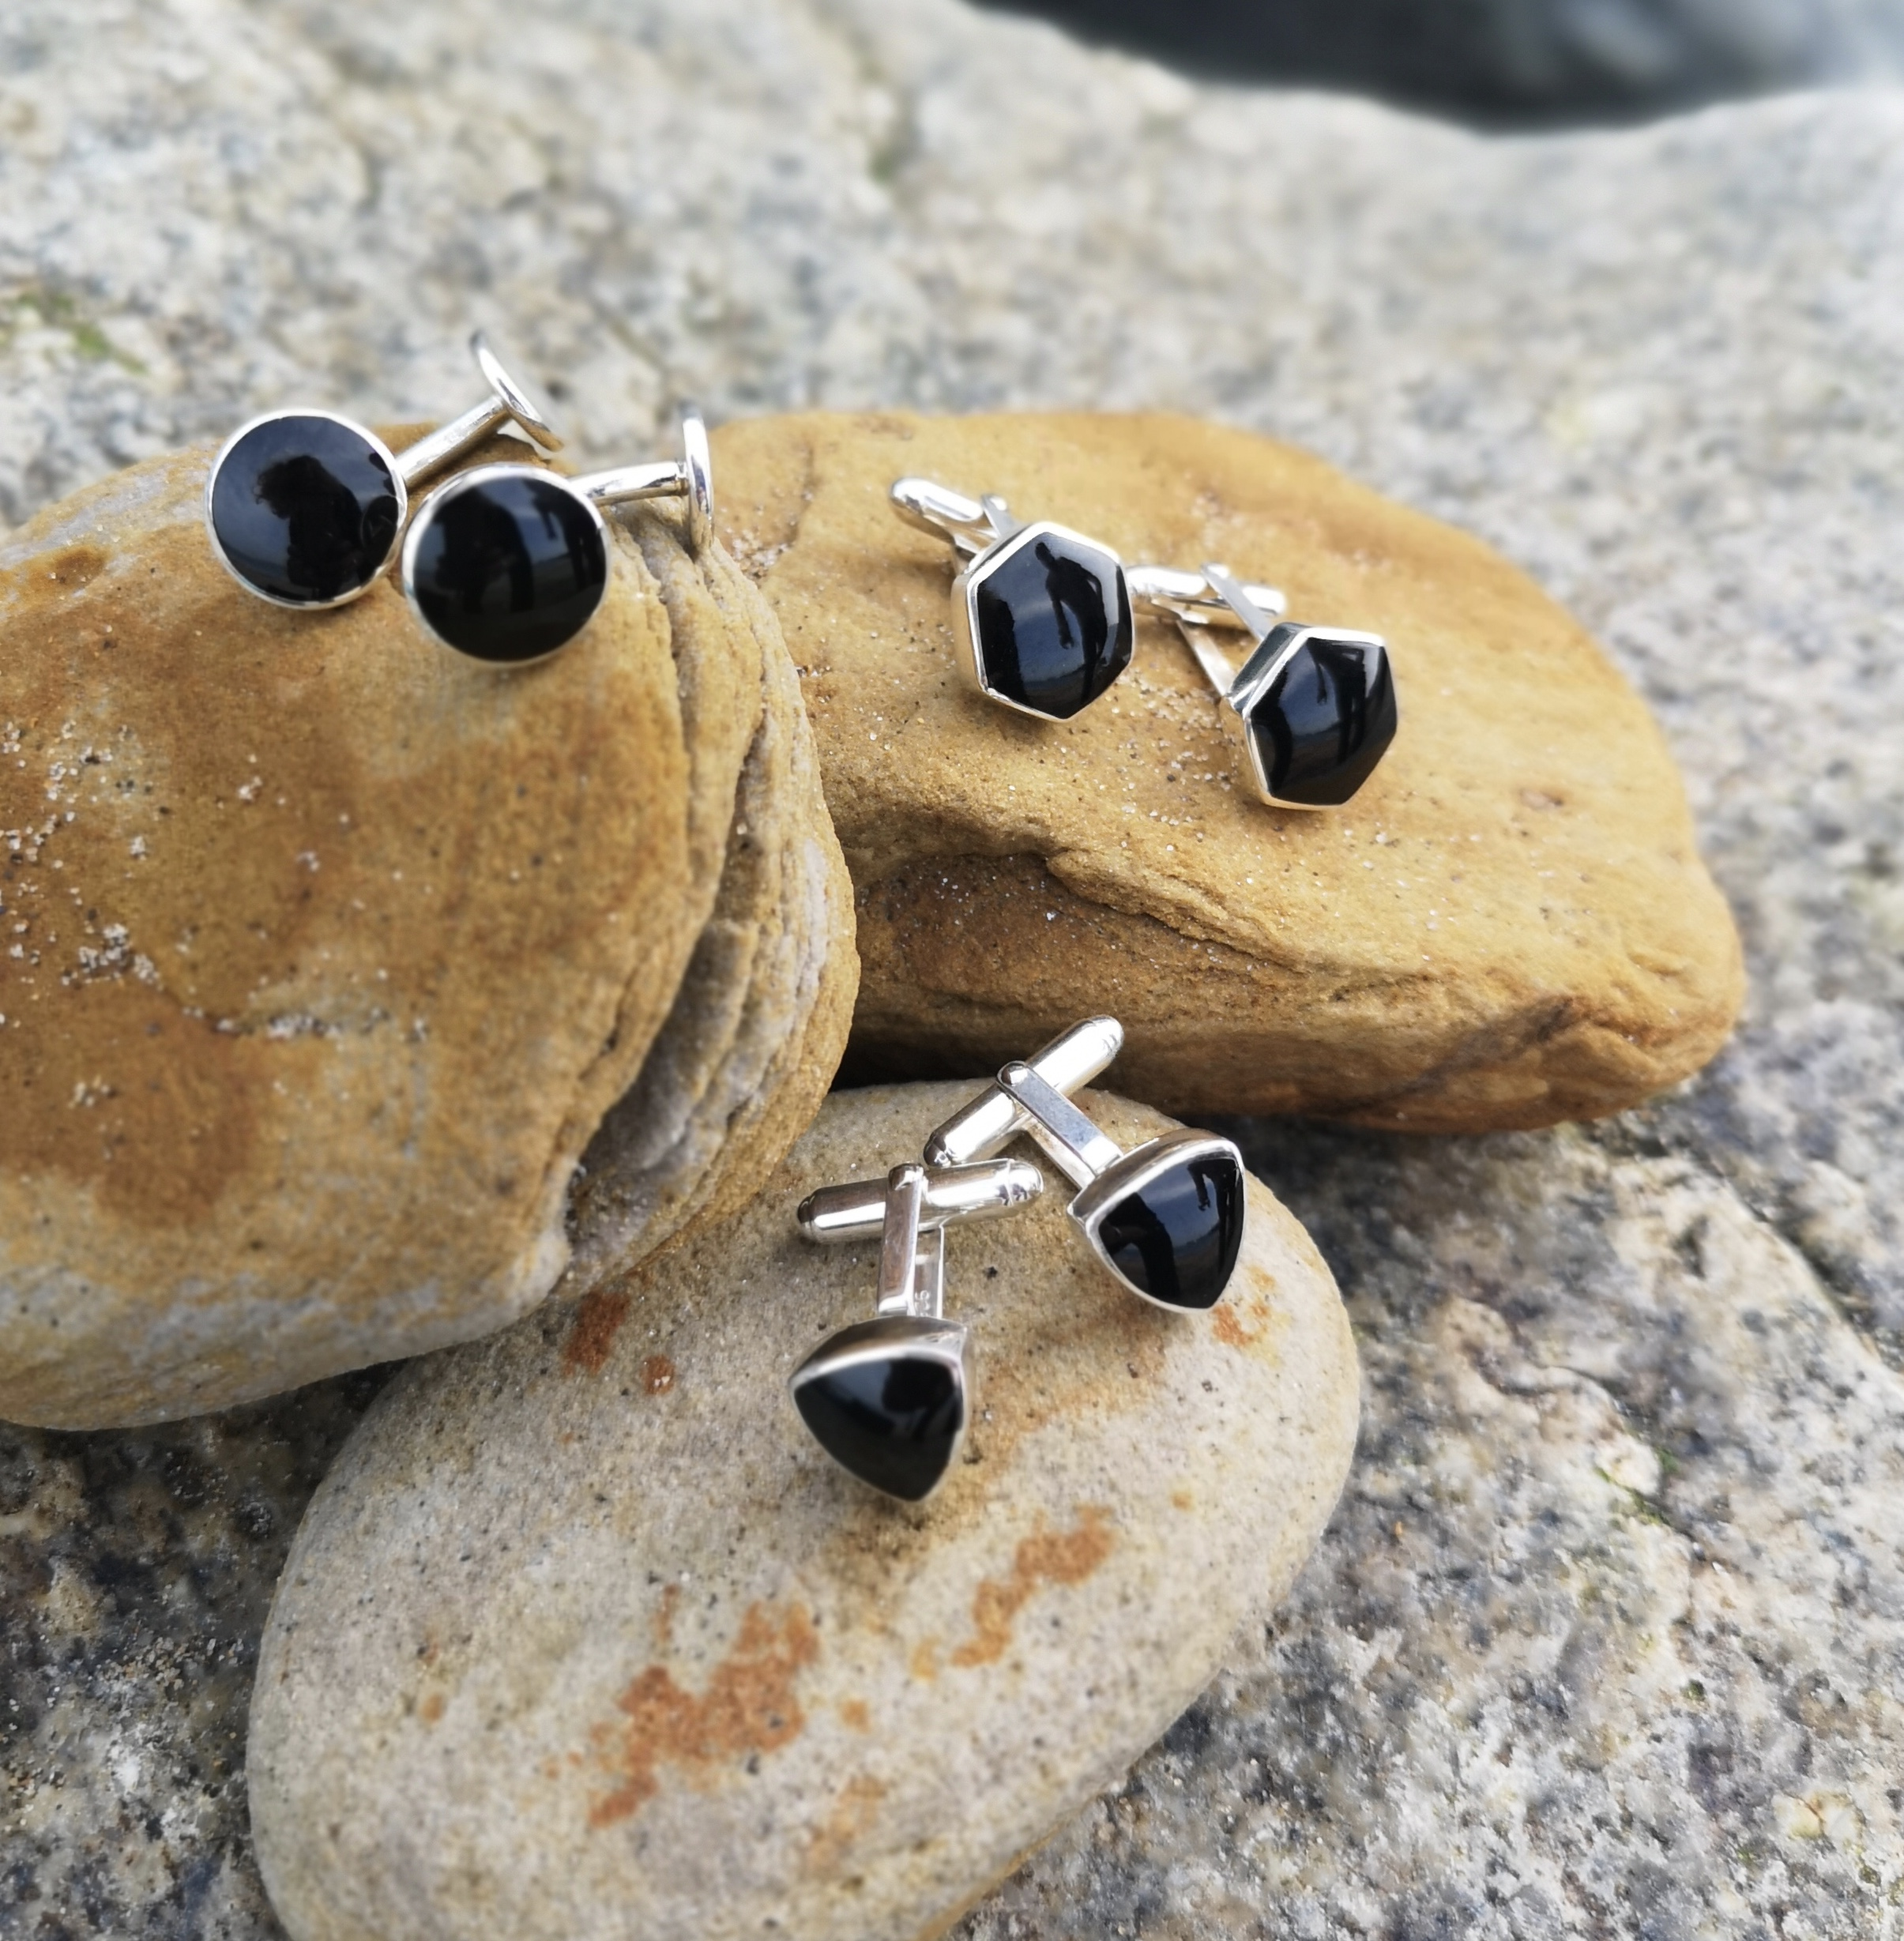 Whitby Jet cufflinks